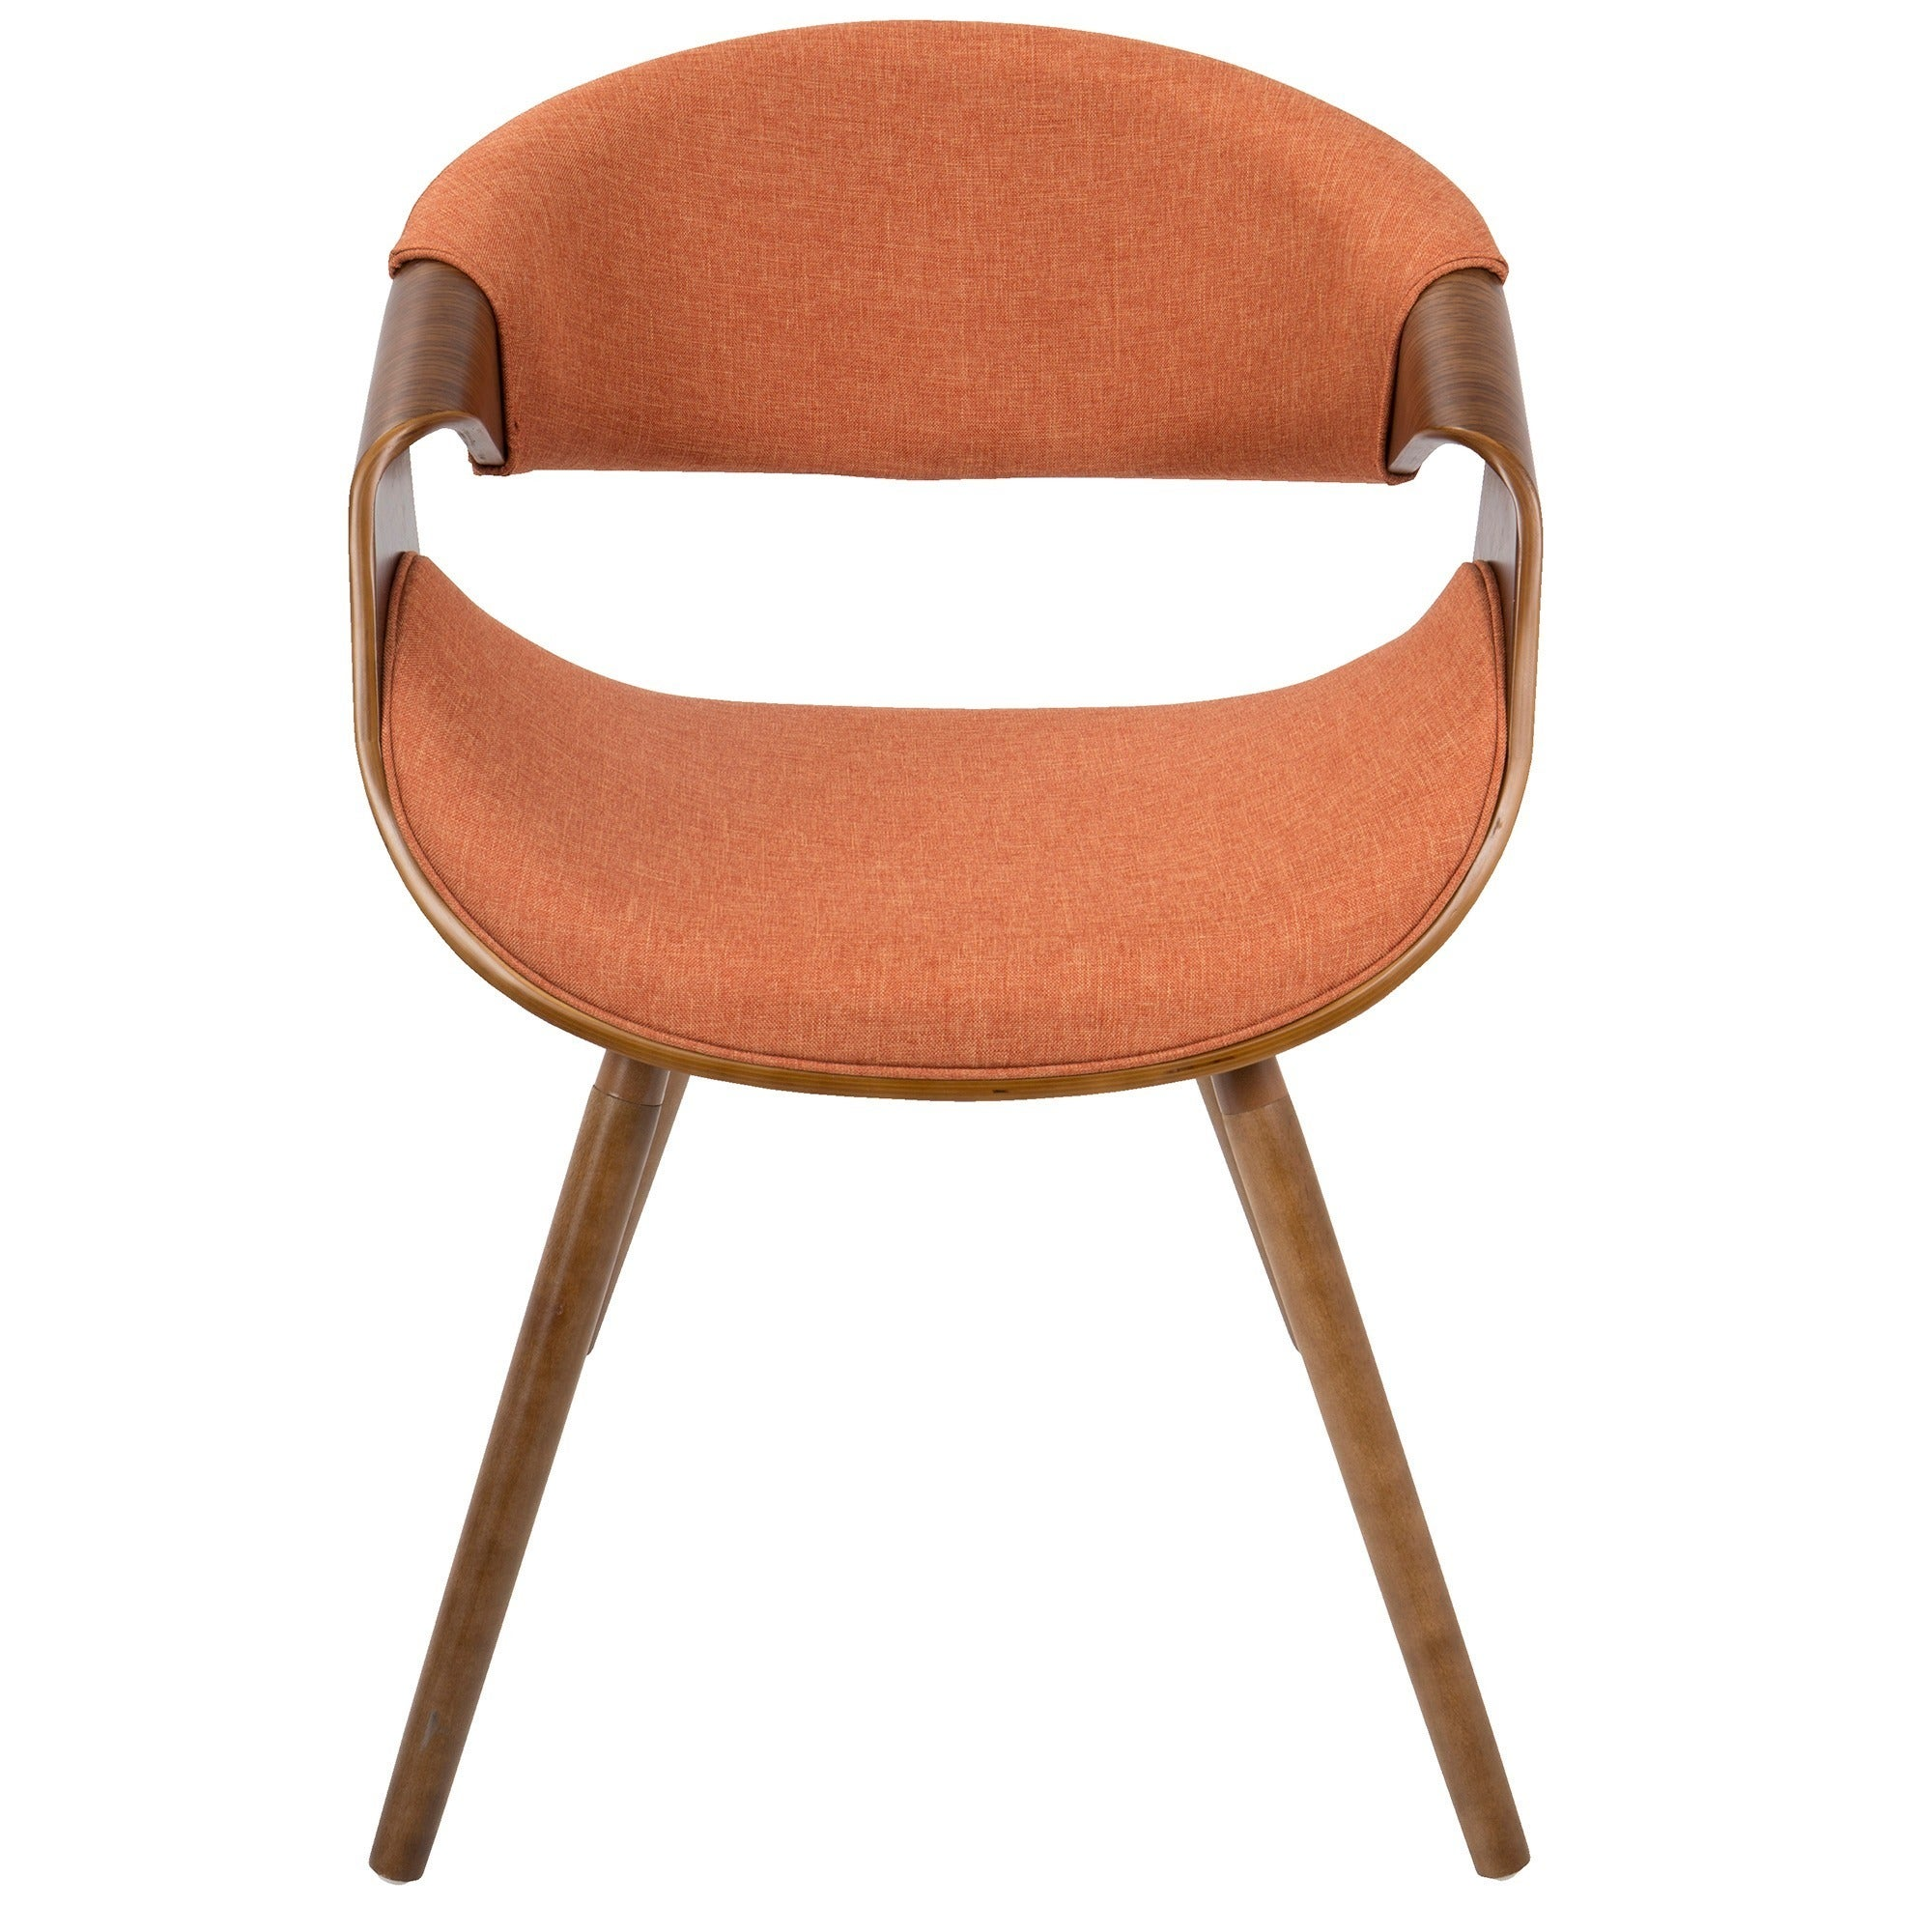 Shop Curvo Mid Century Modern Chair In Walnut Wood   On Sale   Free  Shipping Today   Overstock.com   20370419